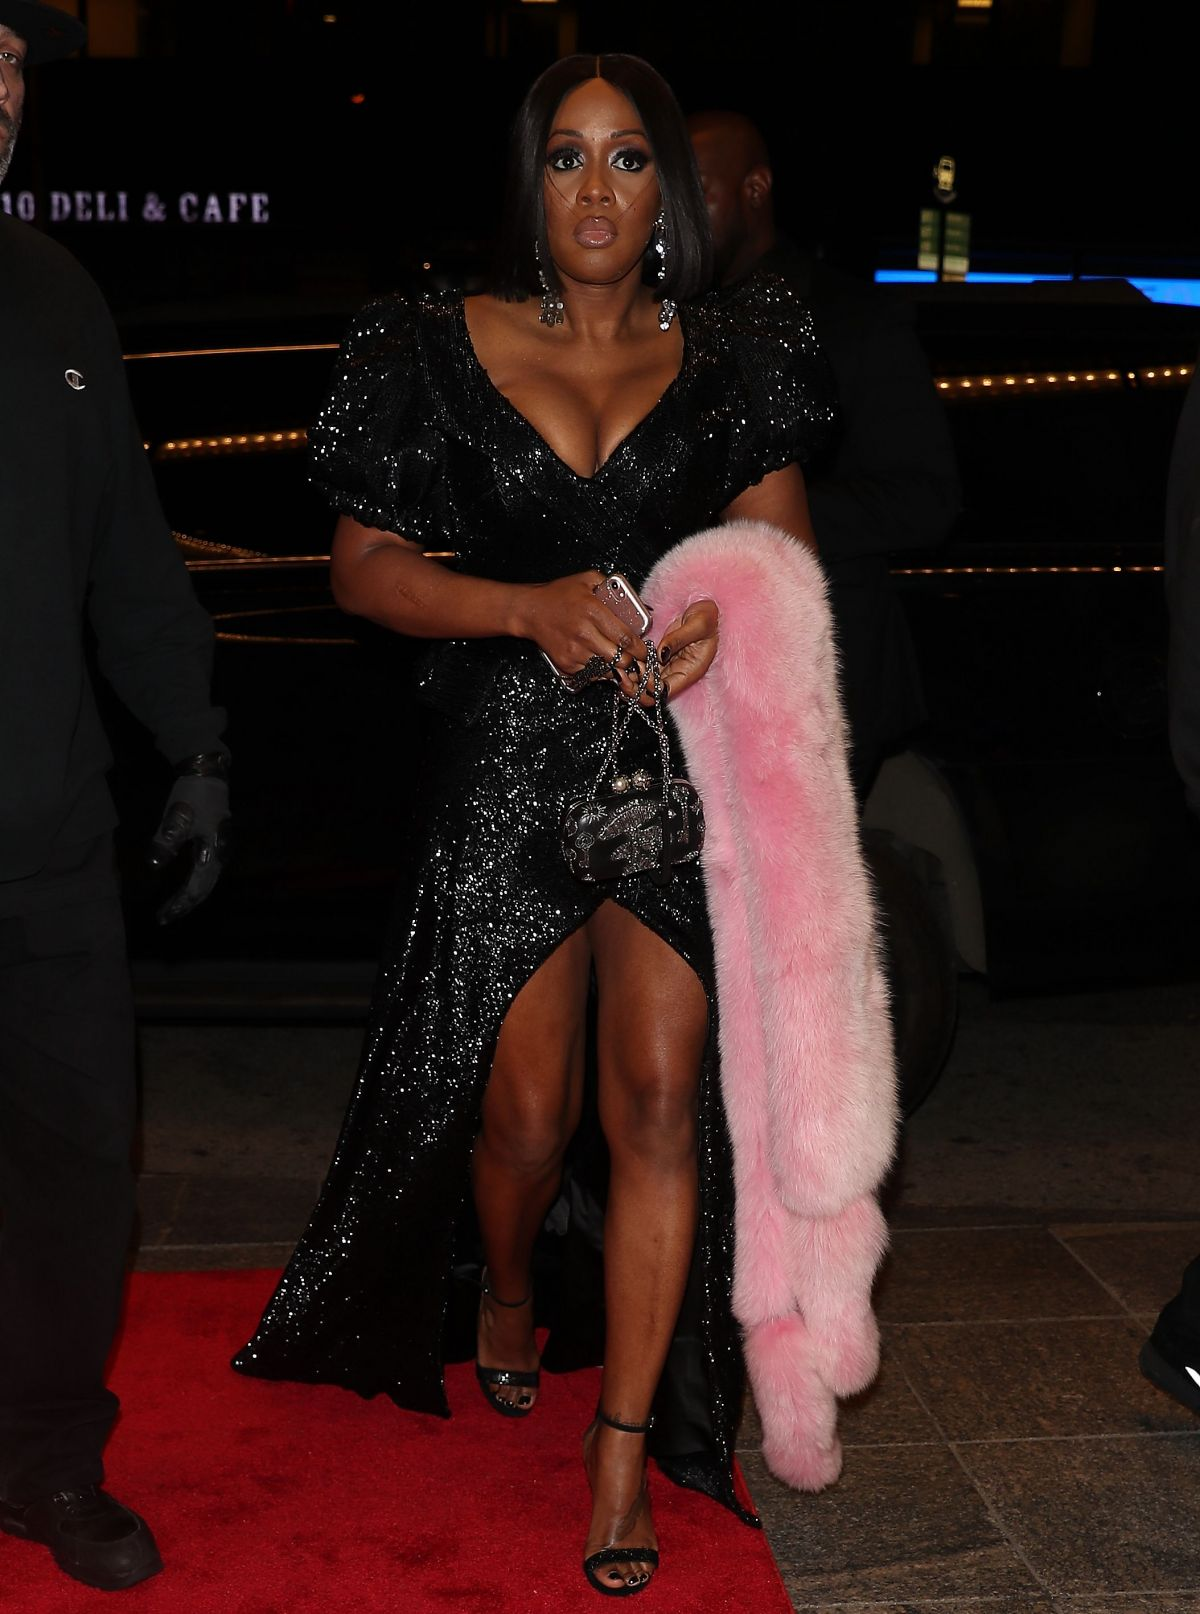 Cleavage Remy Ma nude (44 foto and video), Tits, Sideboobs, Twitter, in bikini 2017